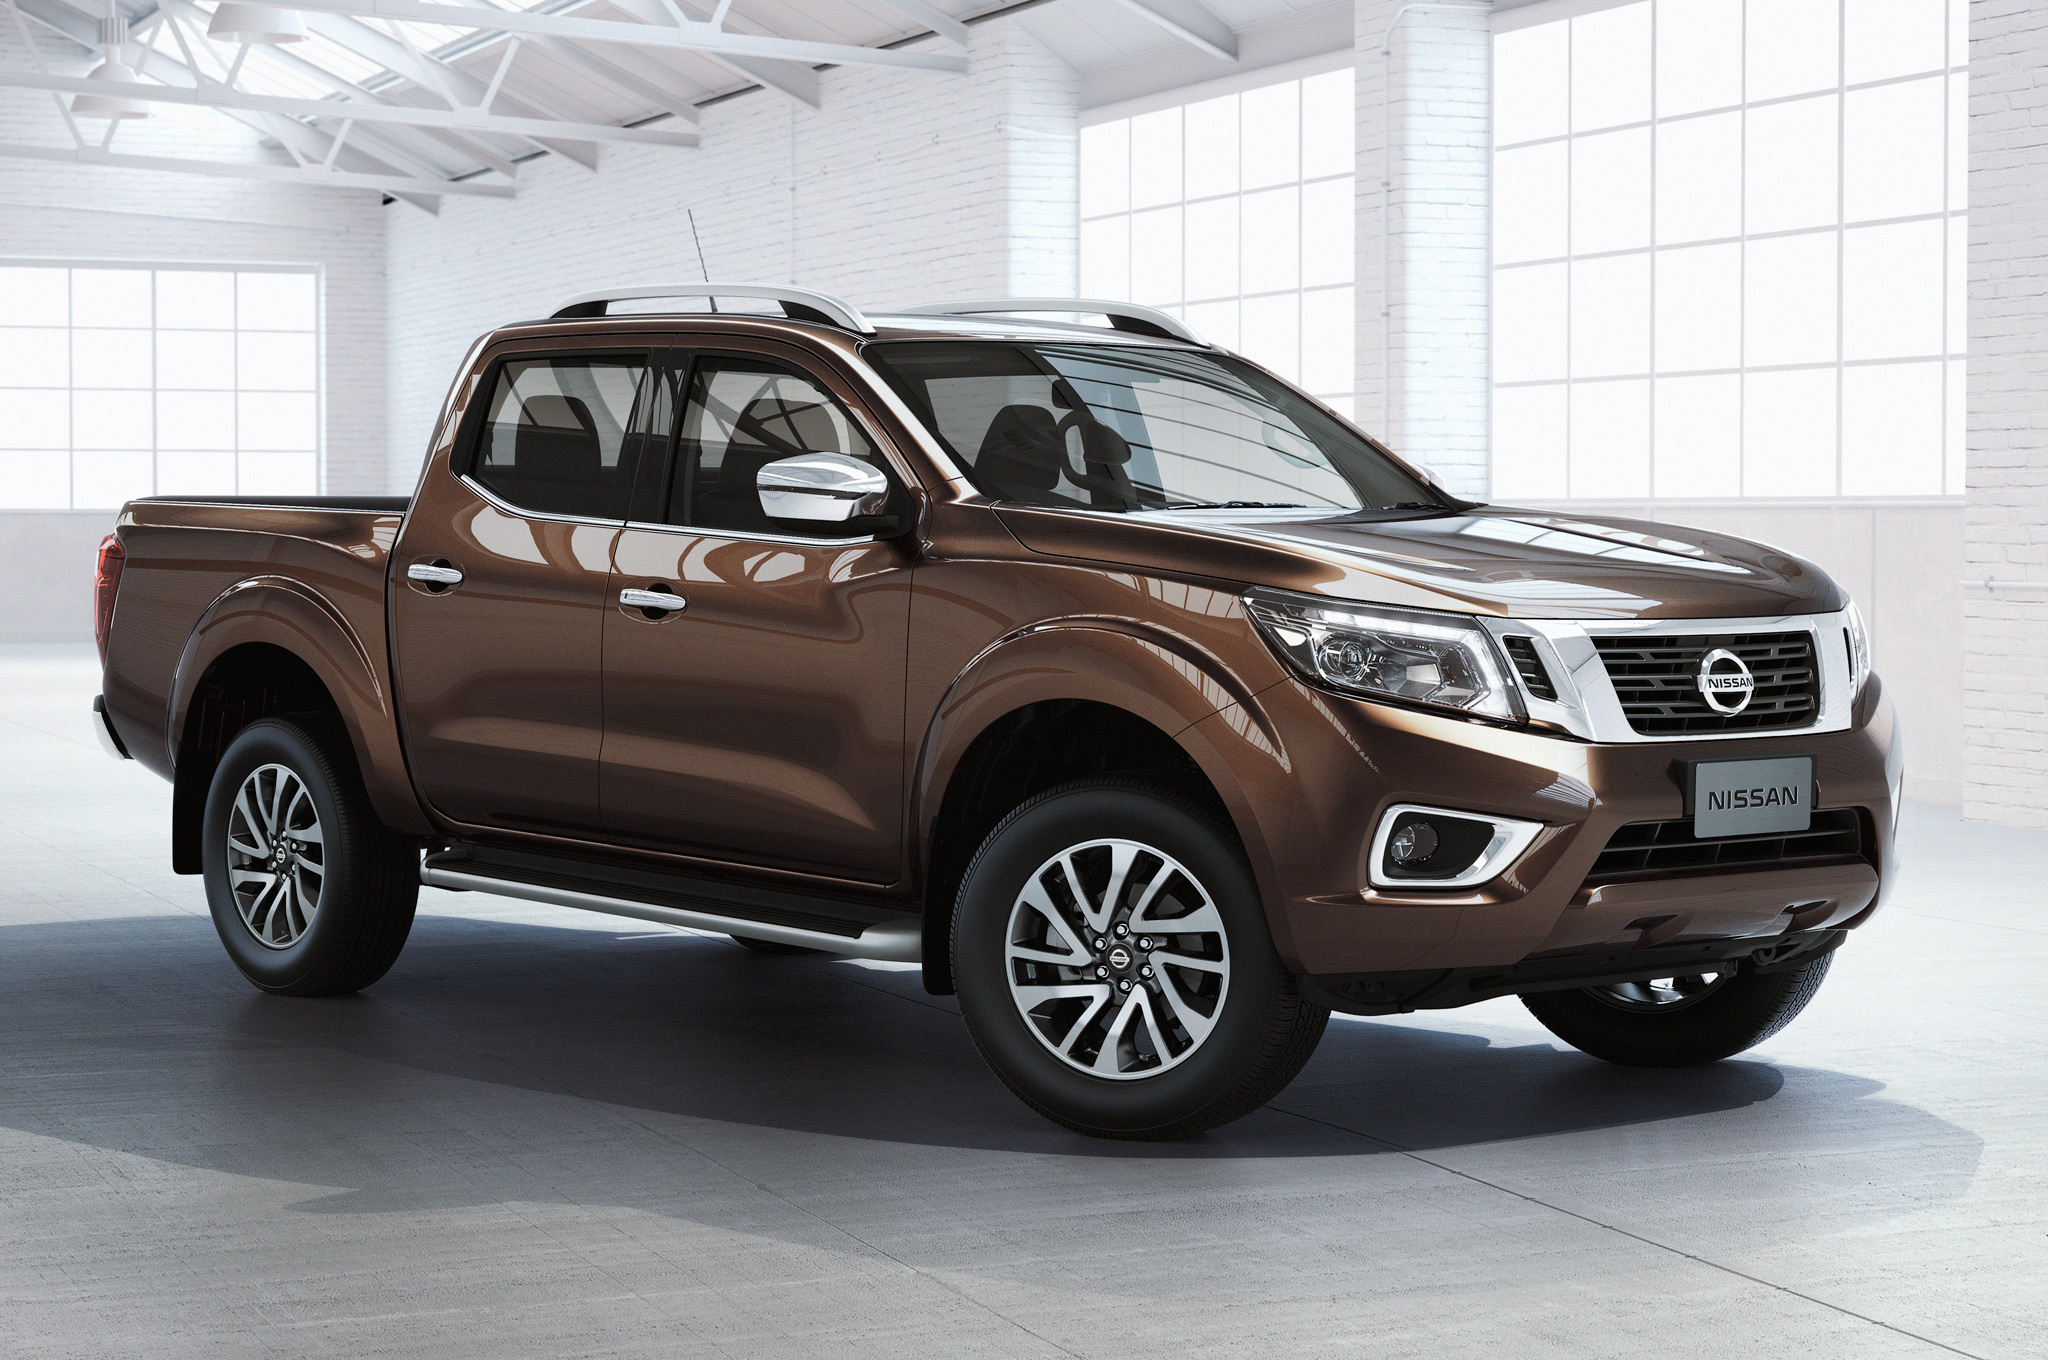 2015 All New Nissan Np300 Navara Facelift (View 2 of 6)